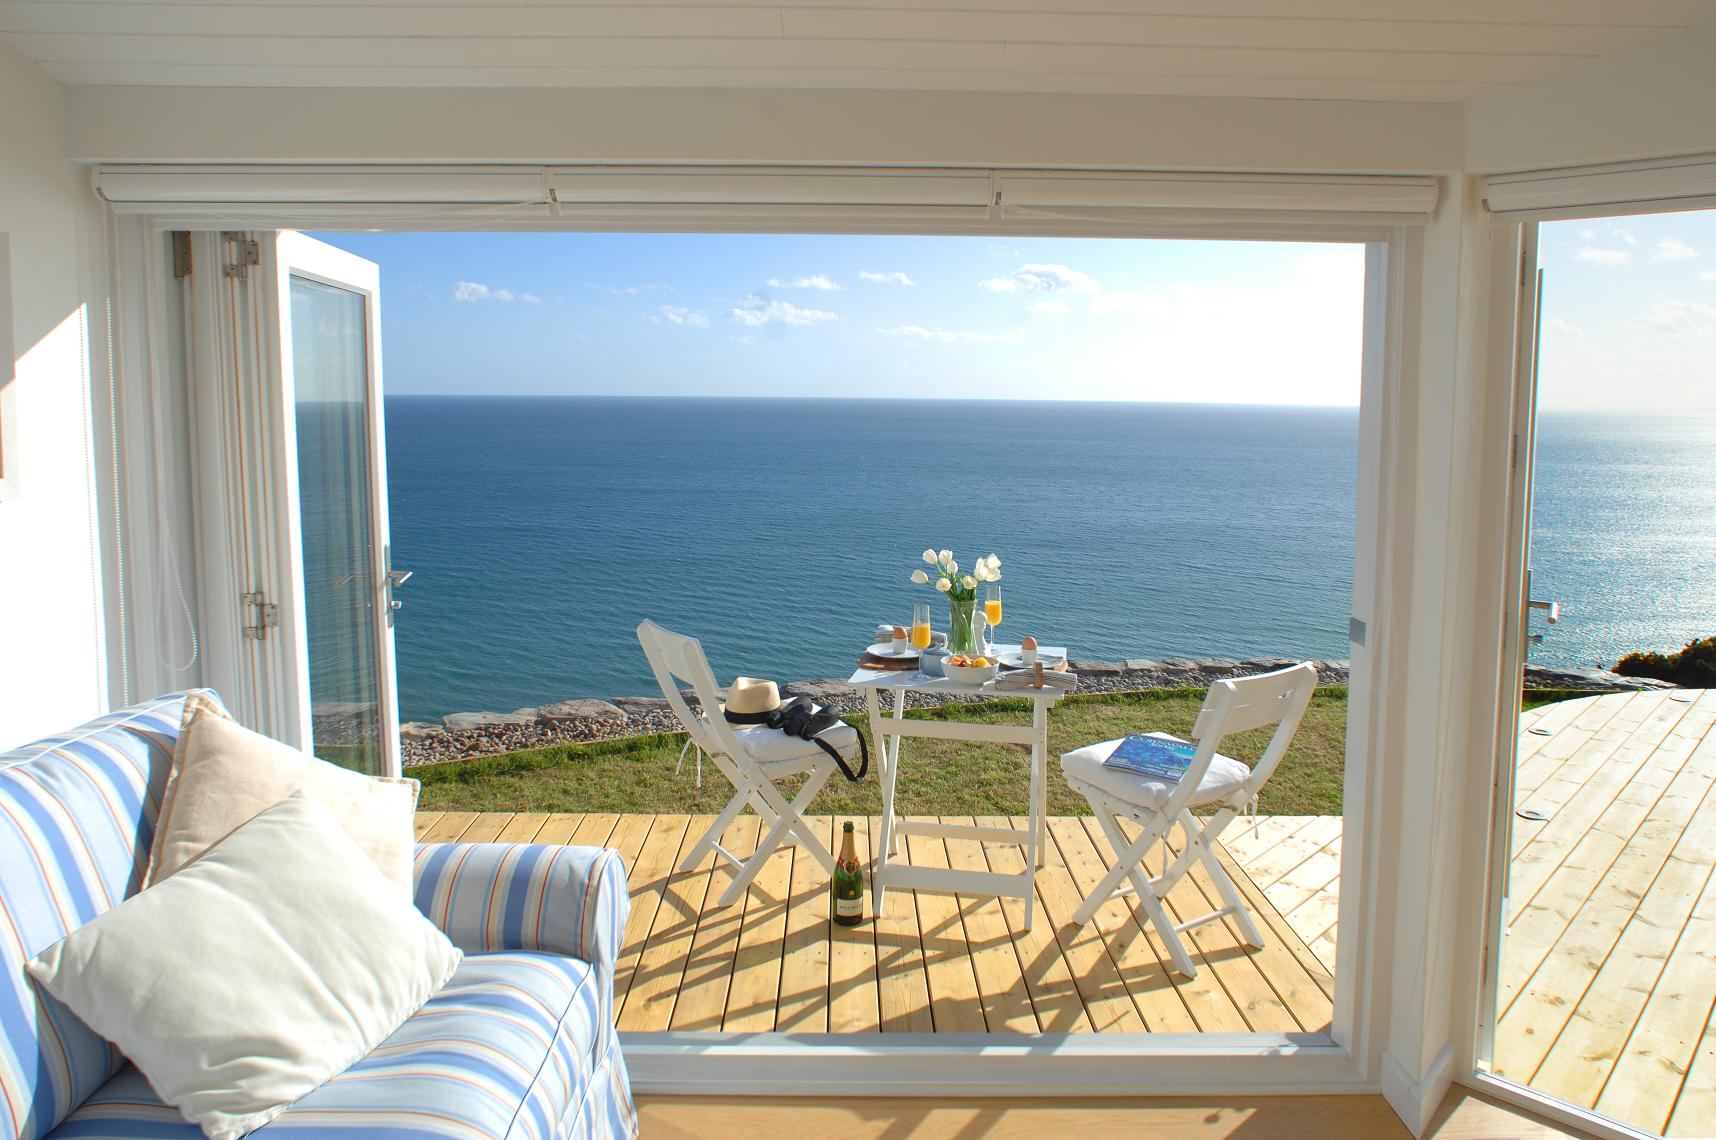 Gallery the edge an idyllic beach cottage in cornwall for Beach house view